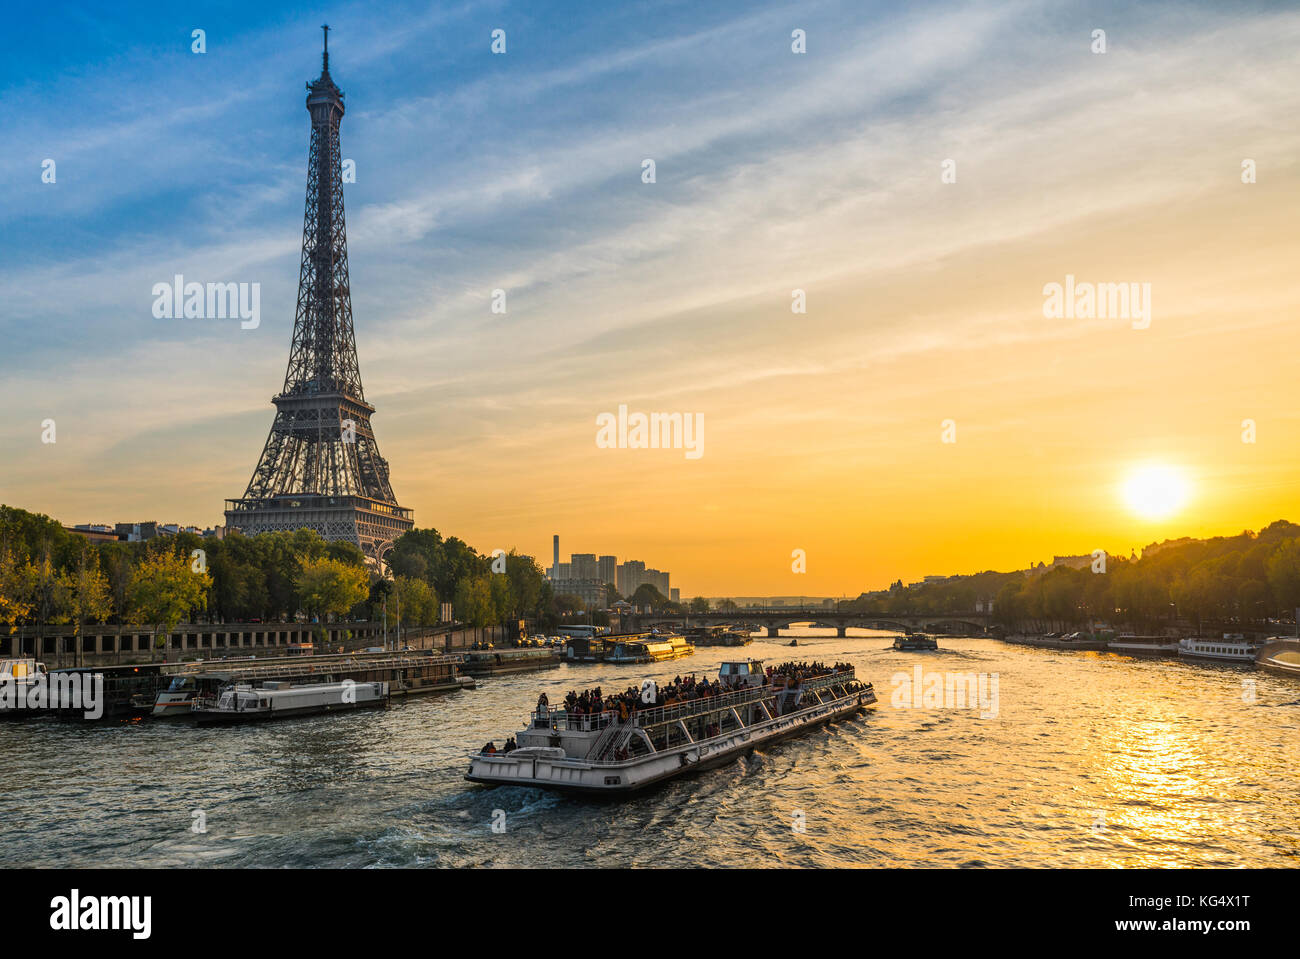 Sunset at the Eiffel tower, Paris - Stock Image